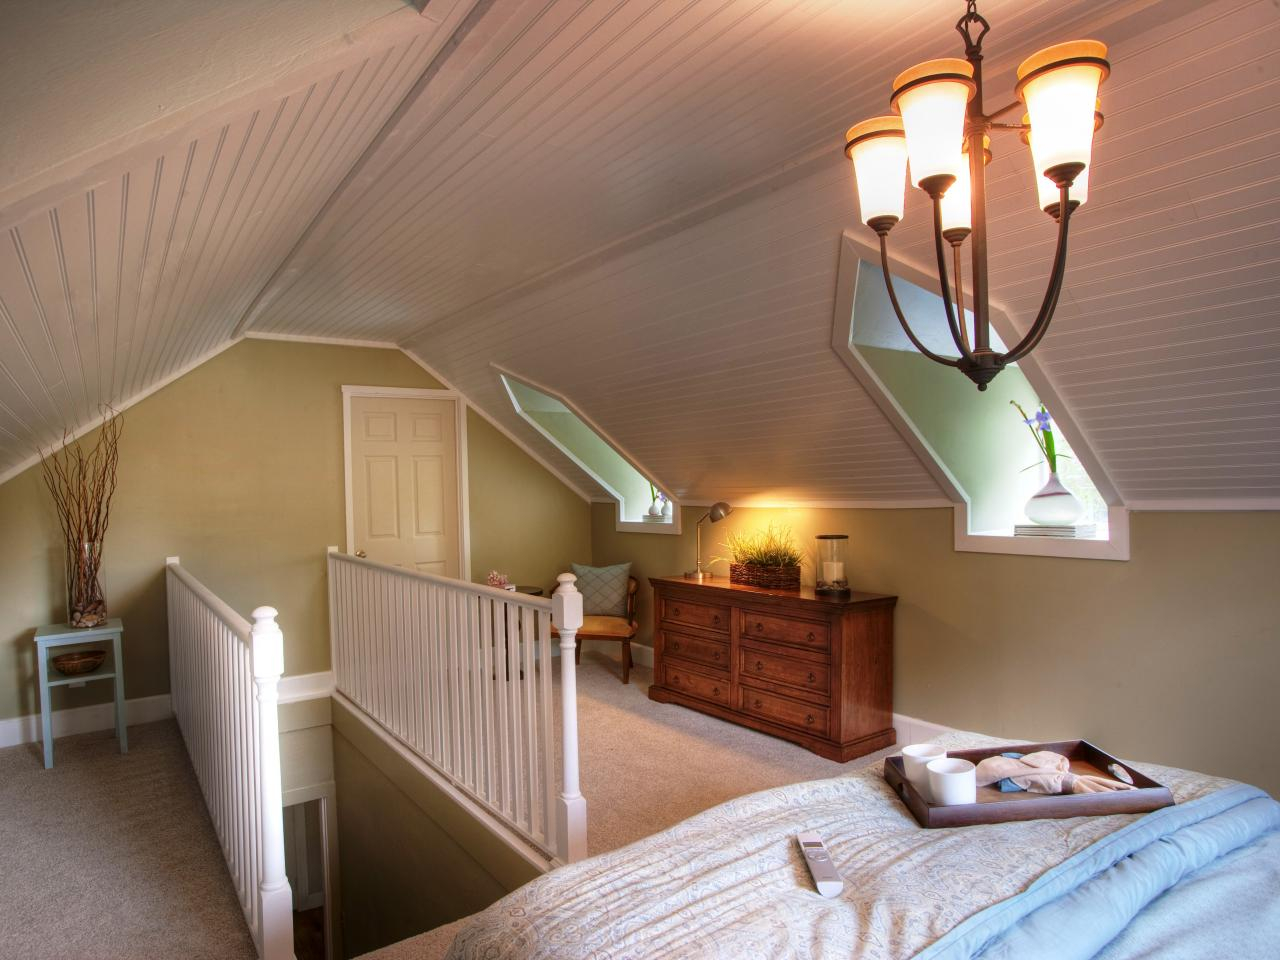 Remodeling Attic Space Ideas Attic Ideas